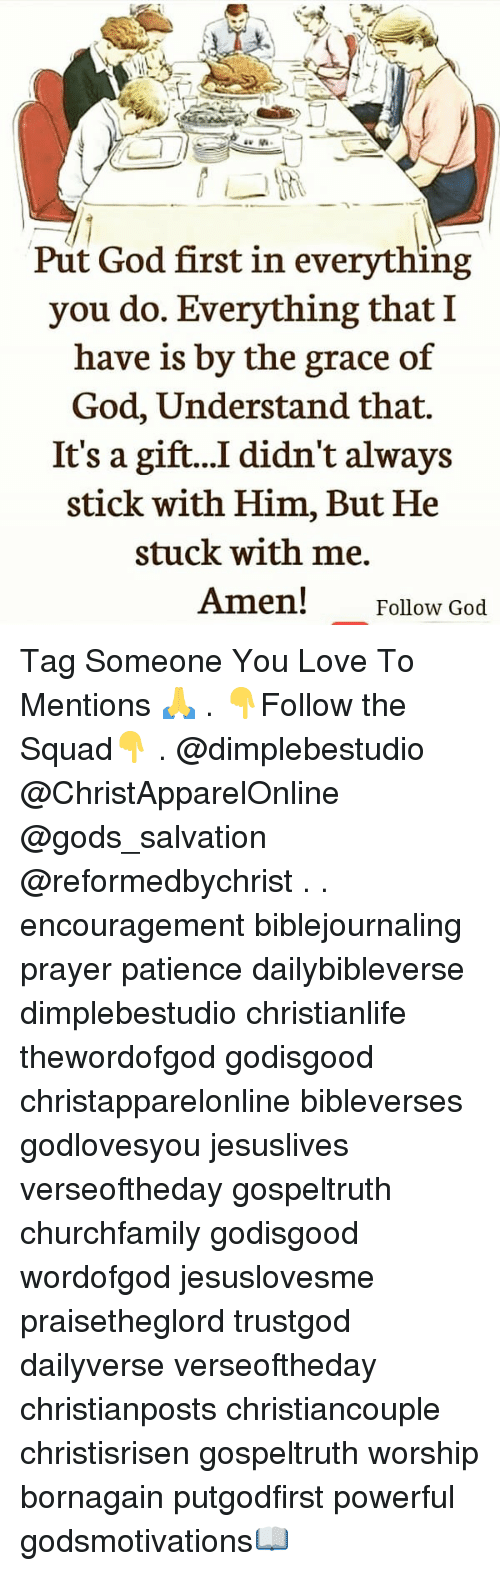 God, Love, and Memes: Put God first in everything  you do. Everything that I  have is by the grace of  God, Understand that.  It's a gift...I. didn't always  stick with Him, But He  stuck with me.  Amen!  Follow God Tag Someone You Love To Mentions 🙏 . 👇Follow the Squad👇 . @dimplebestudio @ChristApparelOnline @gods_salvation @reformedbychrist . . encouragement biblejournaling prayer patience dailybibleverse dimplebestudio christianlife thewordofgod godisgood christapparelonline bibleverses godlovesyou jesuslives verseoftheday gospeltruth churchfamily godisgood wordofgod jesuslovesme praisetheglord trustgod dailyverse verseoftheday christianposts christiancouple christisrisen gospeltruth worship bornagain putgodfirst powerful godsmotivations📖